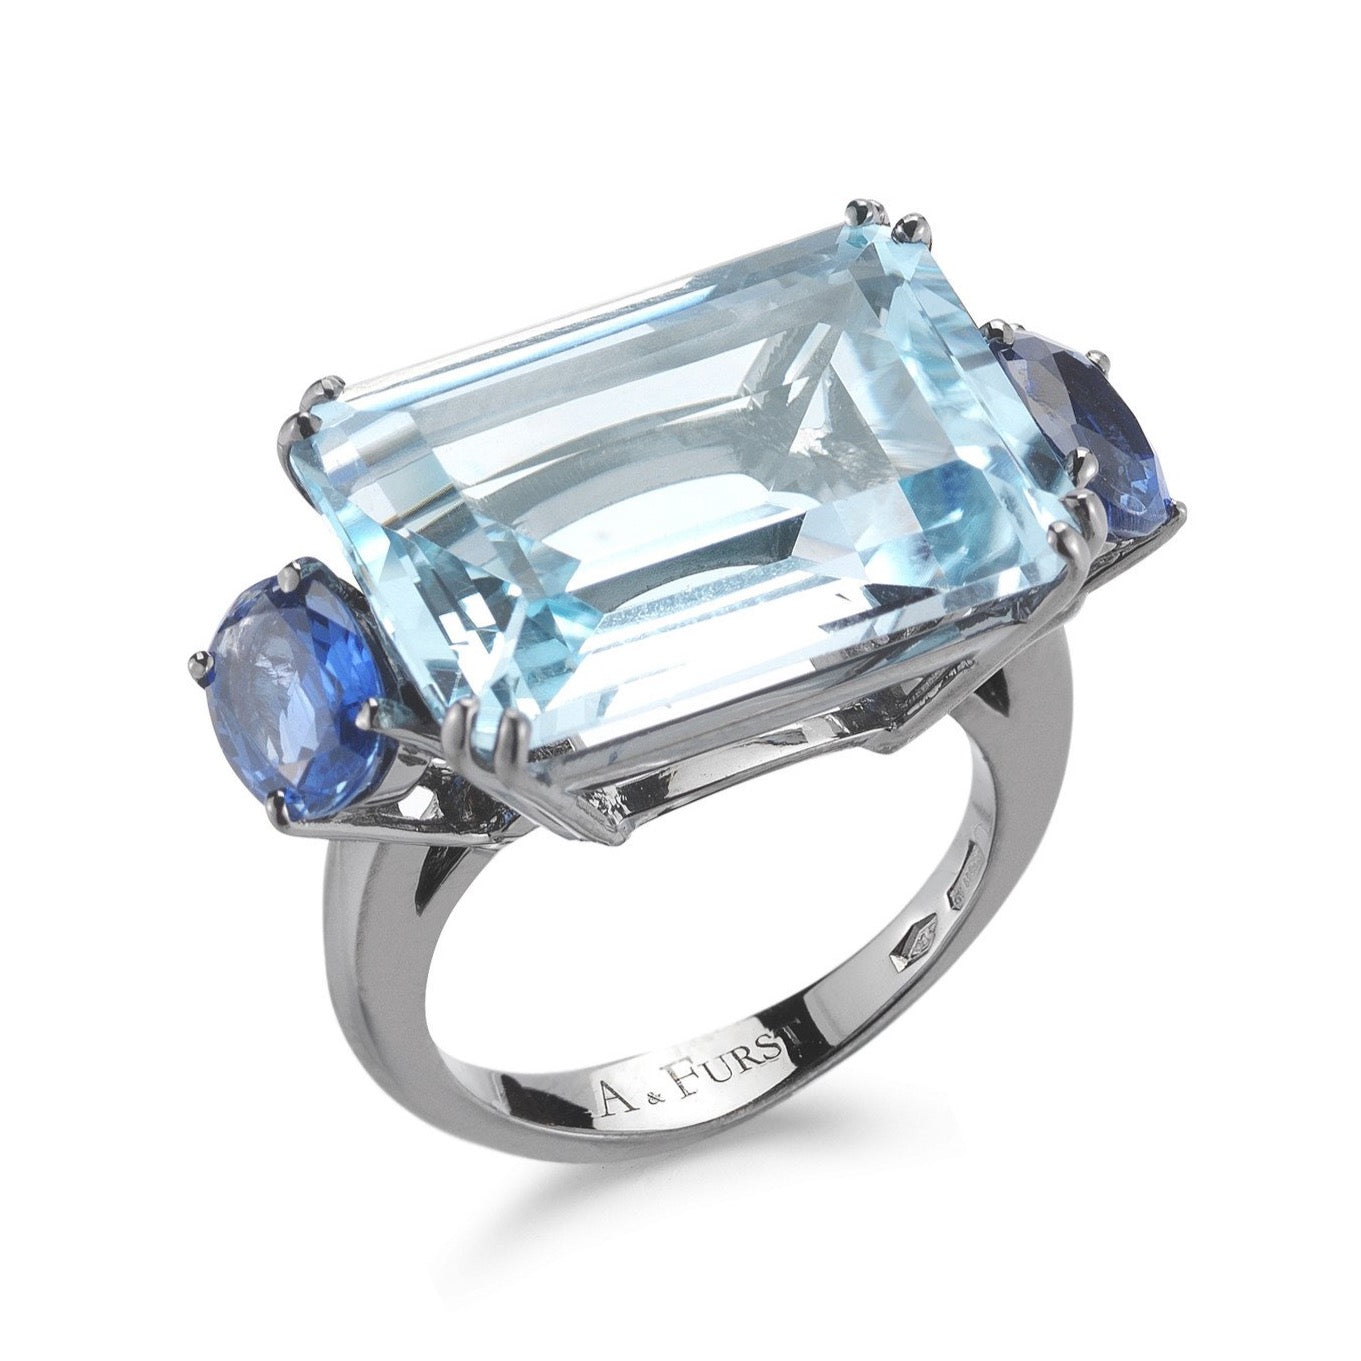 "A & Furst ""Party"" Cocktail Ring with Blue Topaz and Kyanite, 18k Blackened Gold."